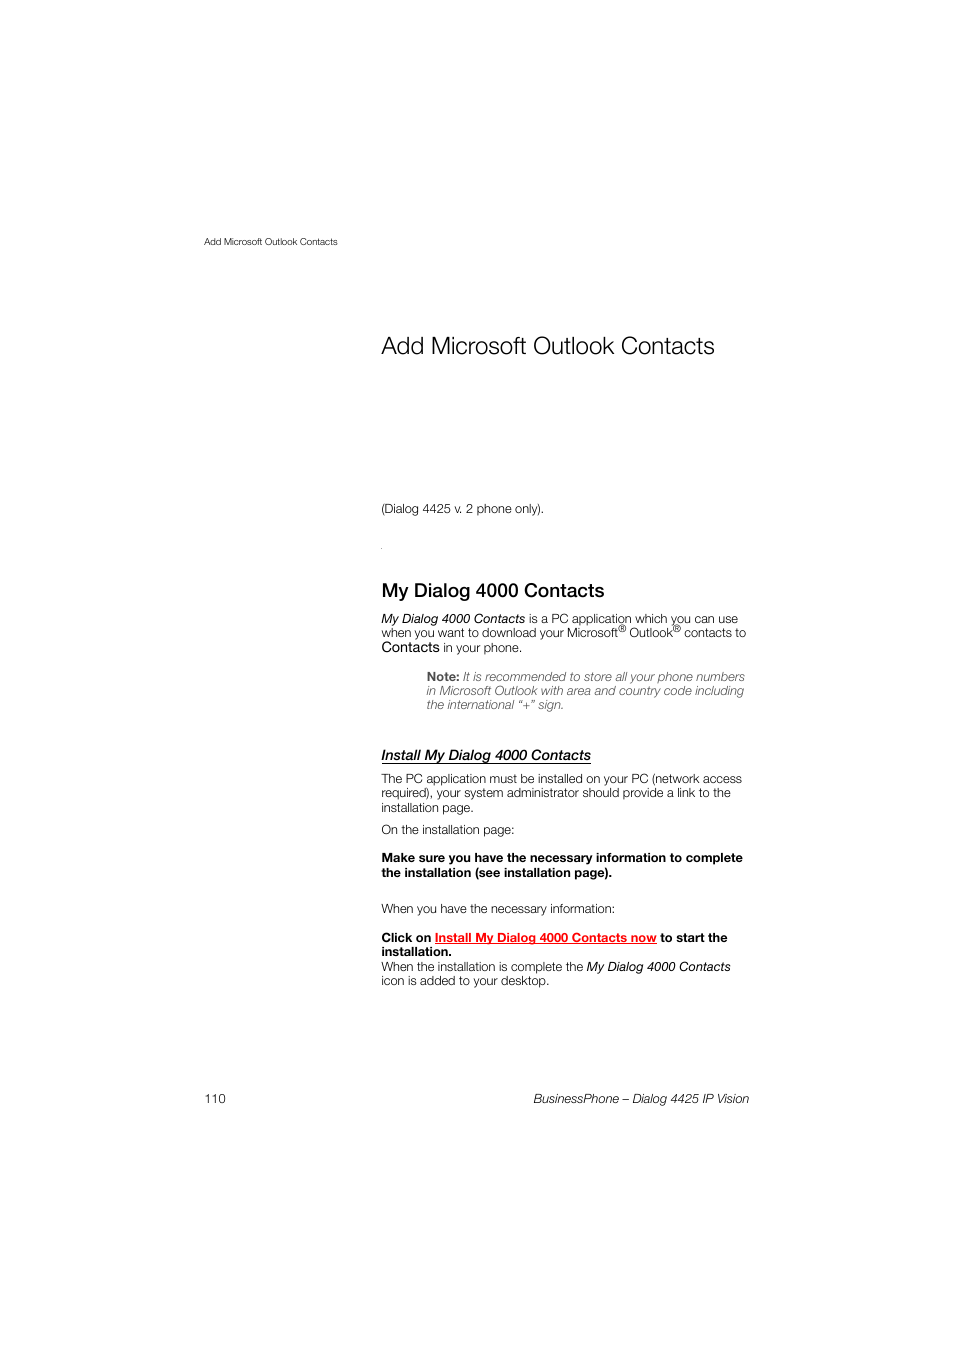 Add microsoft outlook contacts, My dialog 4000 contacts